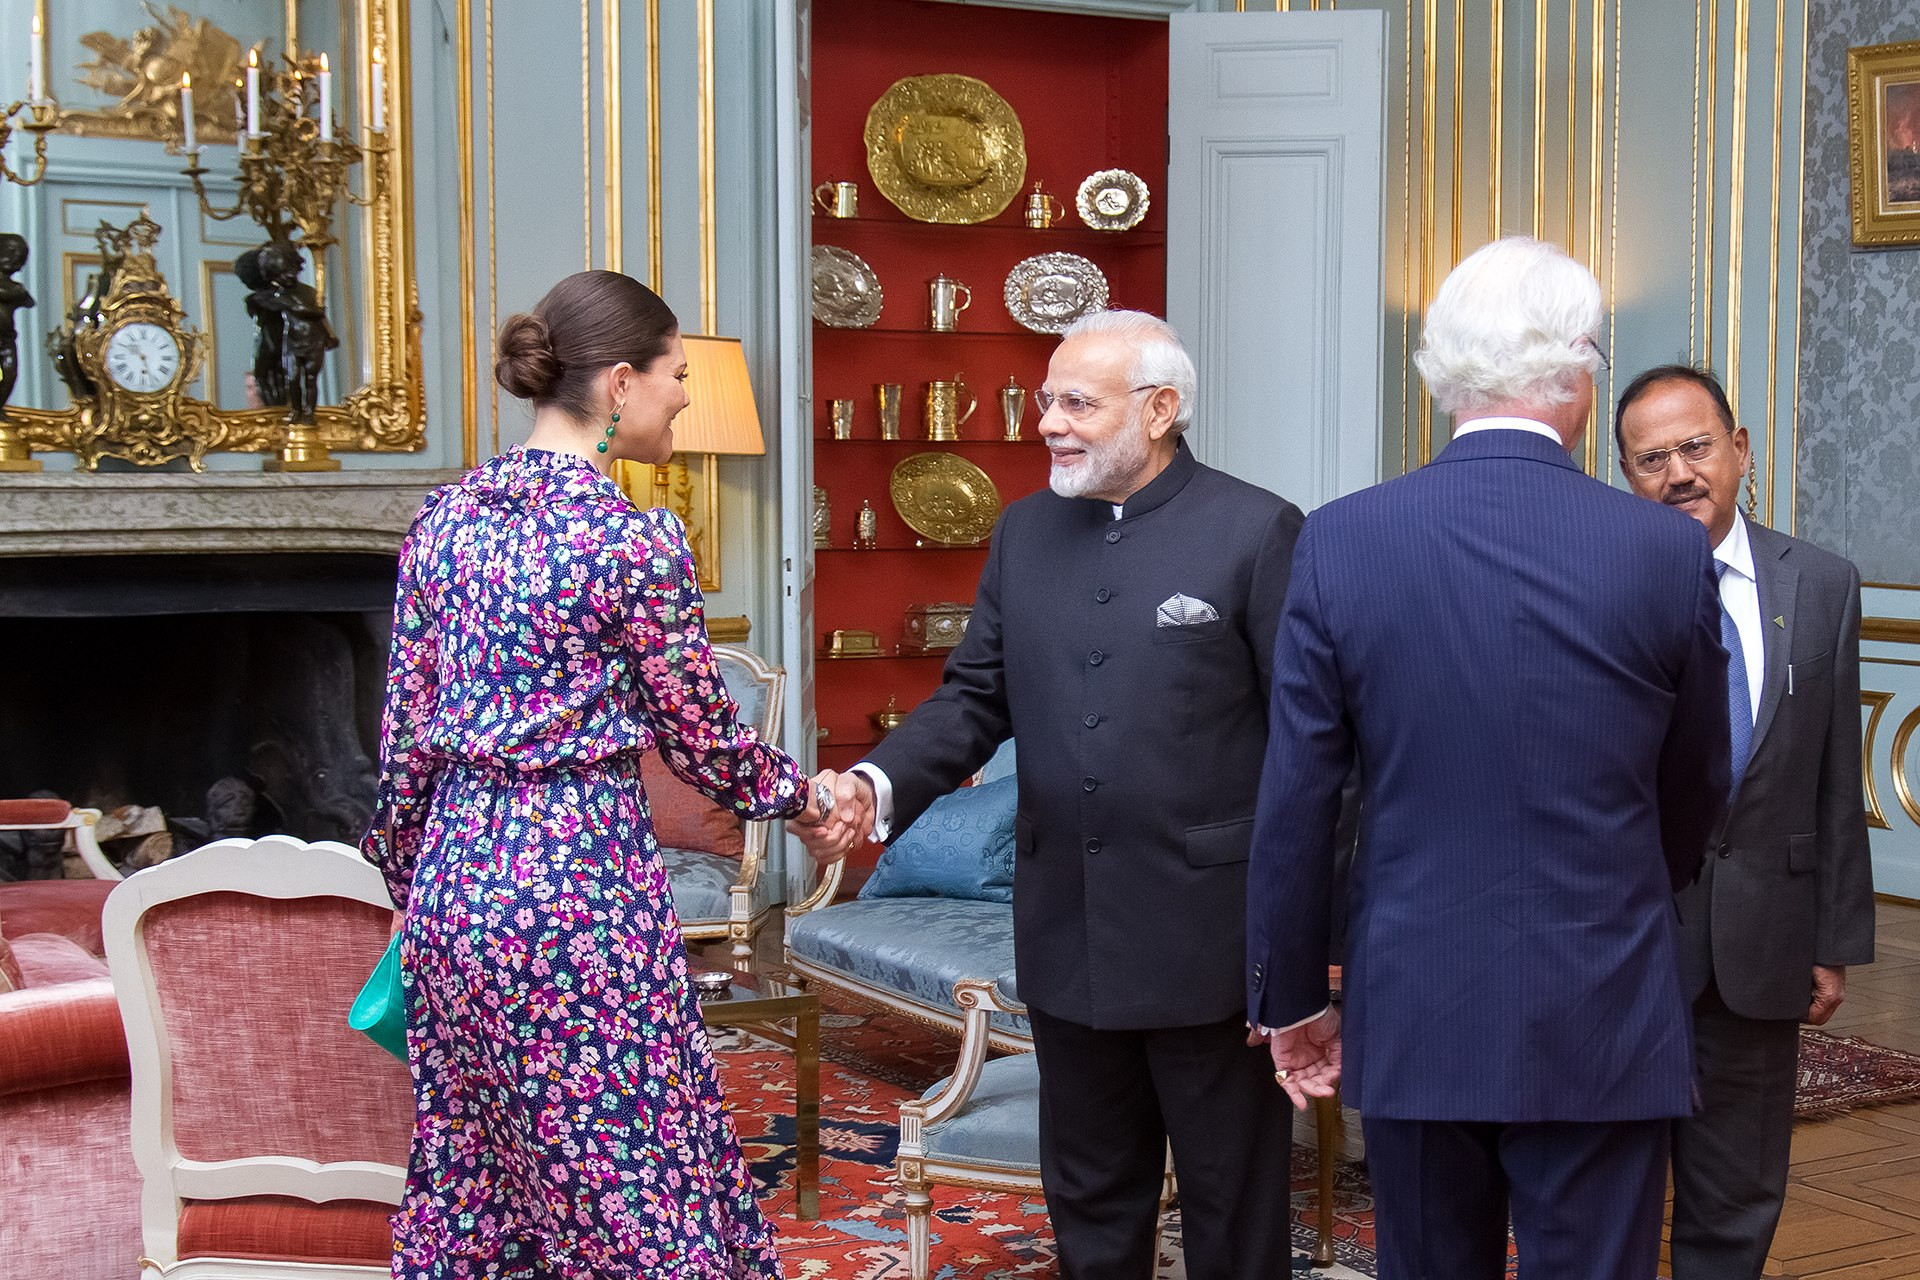 Prime Minister Narendra Modi's audience with His Majesty the King and Her Royal Highness Crown Princess Victoria.